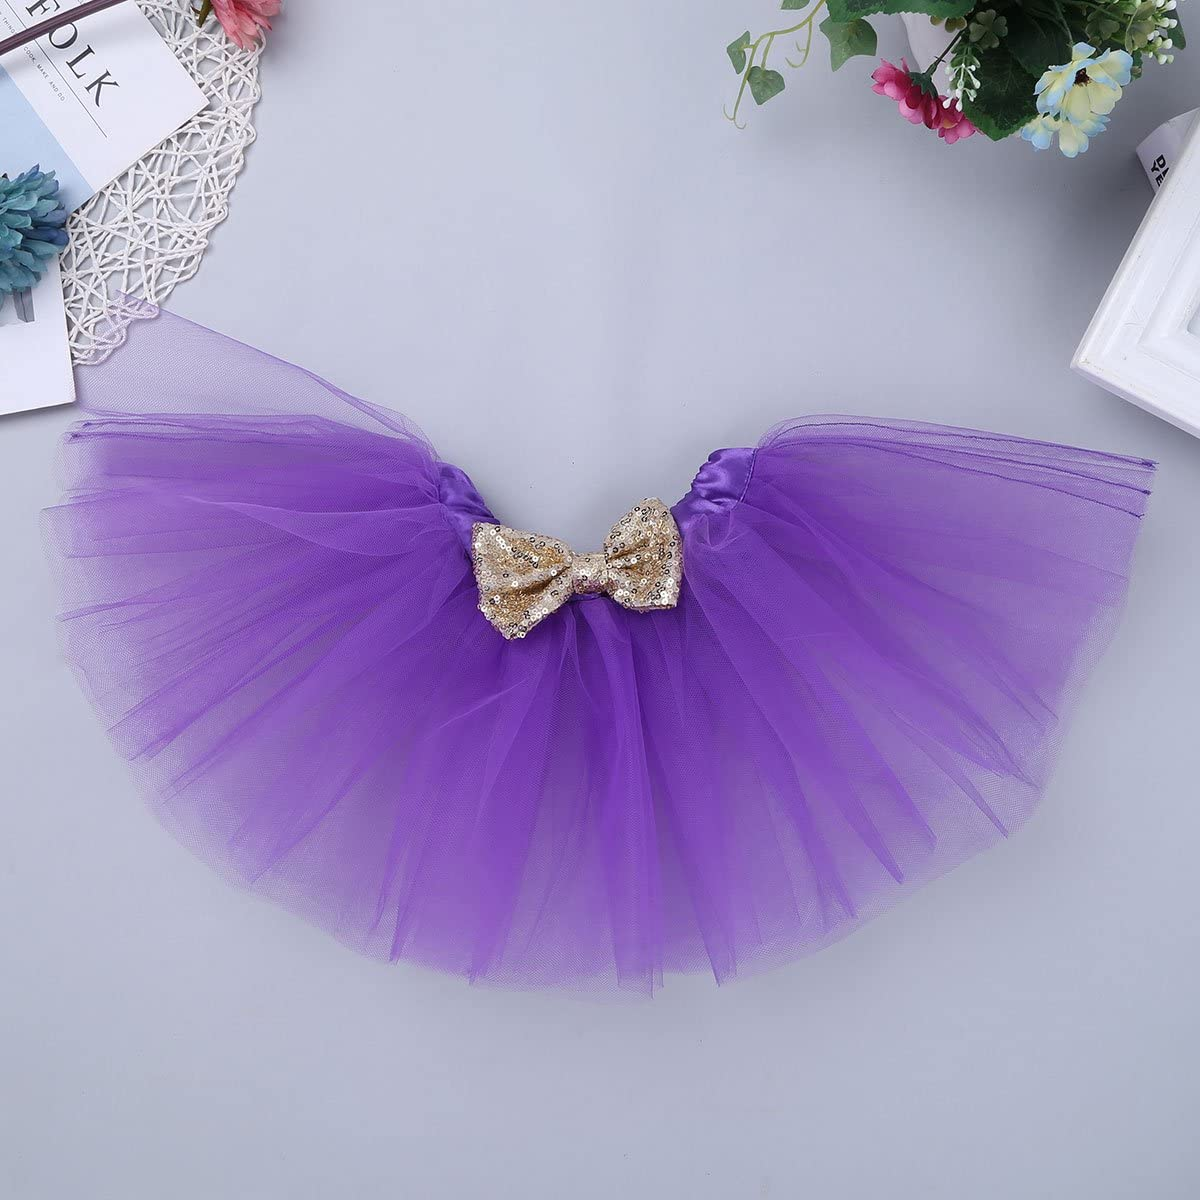 ACSUSS Baby Girls Its My First Birthday Party Outfits Shiny Romper with Tutu Skirt Sequins Headband